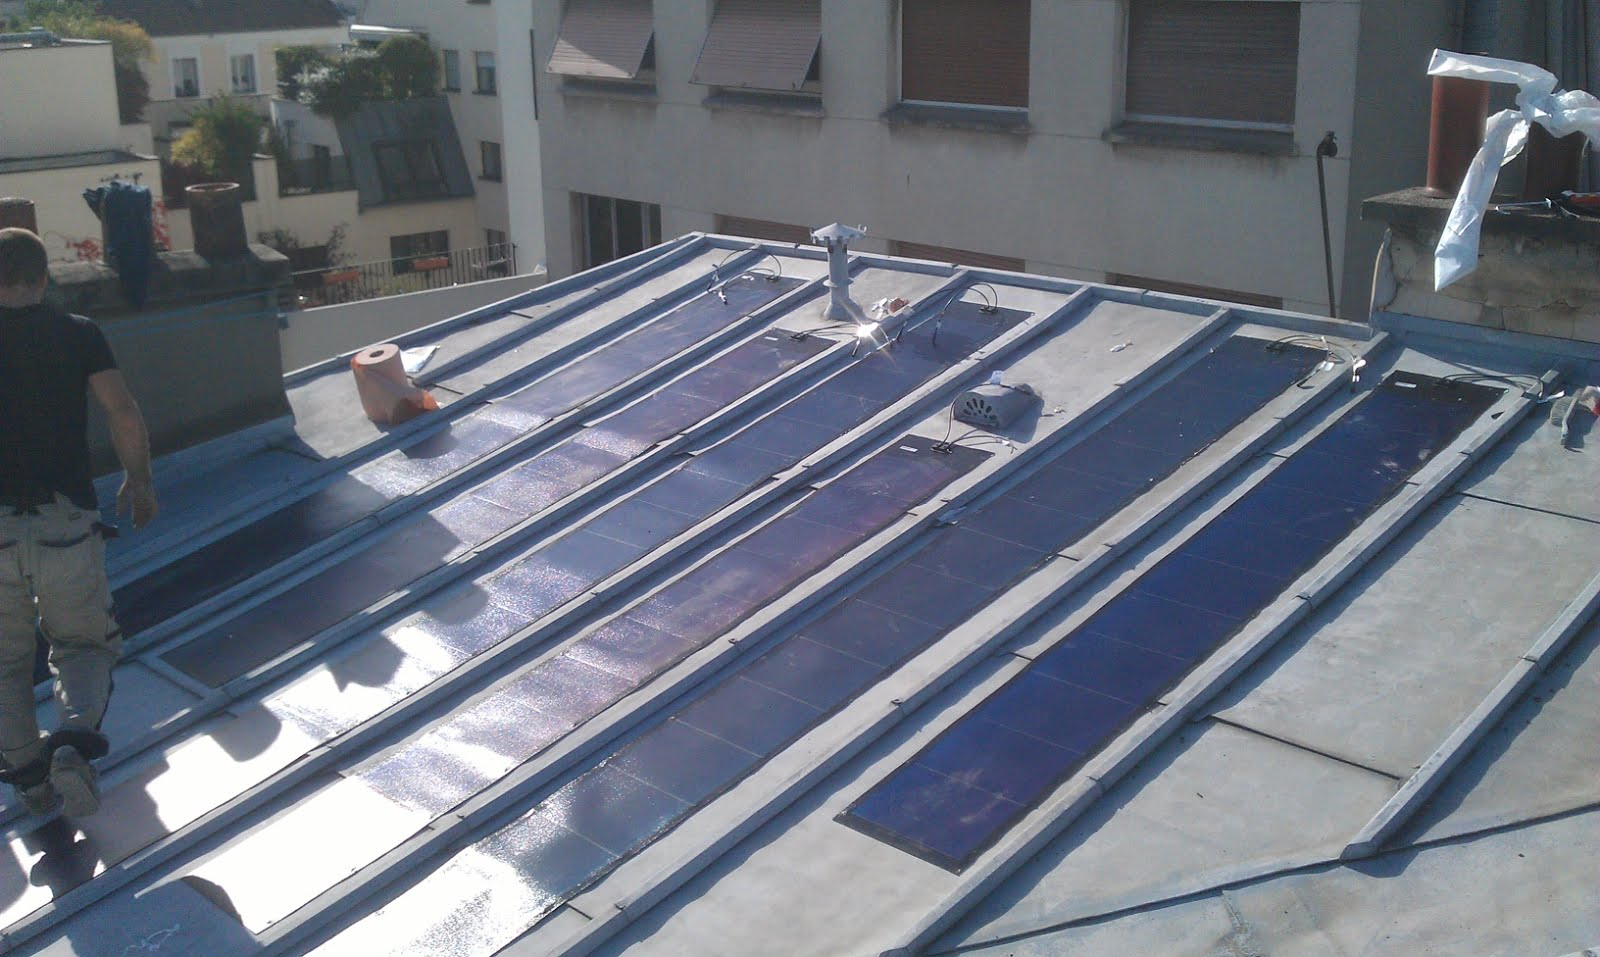 My E Life Now Solar Panels Installation 13 Uni Pvl 124w Bullet Train Educational Diy Kit 68w 31w